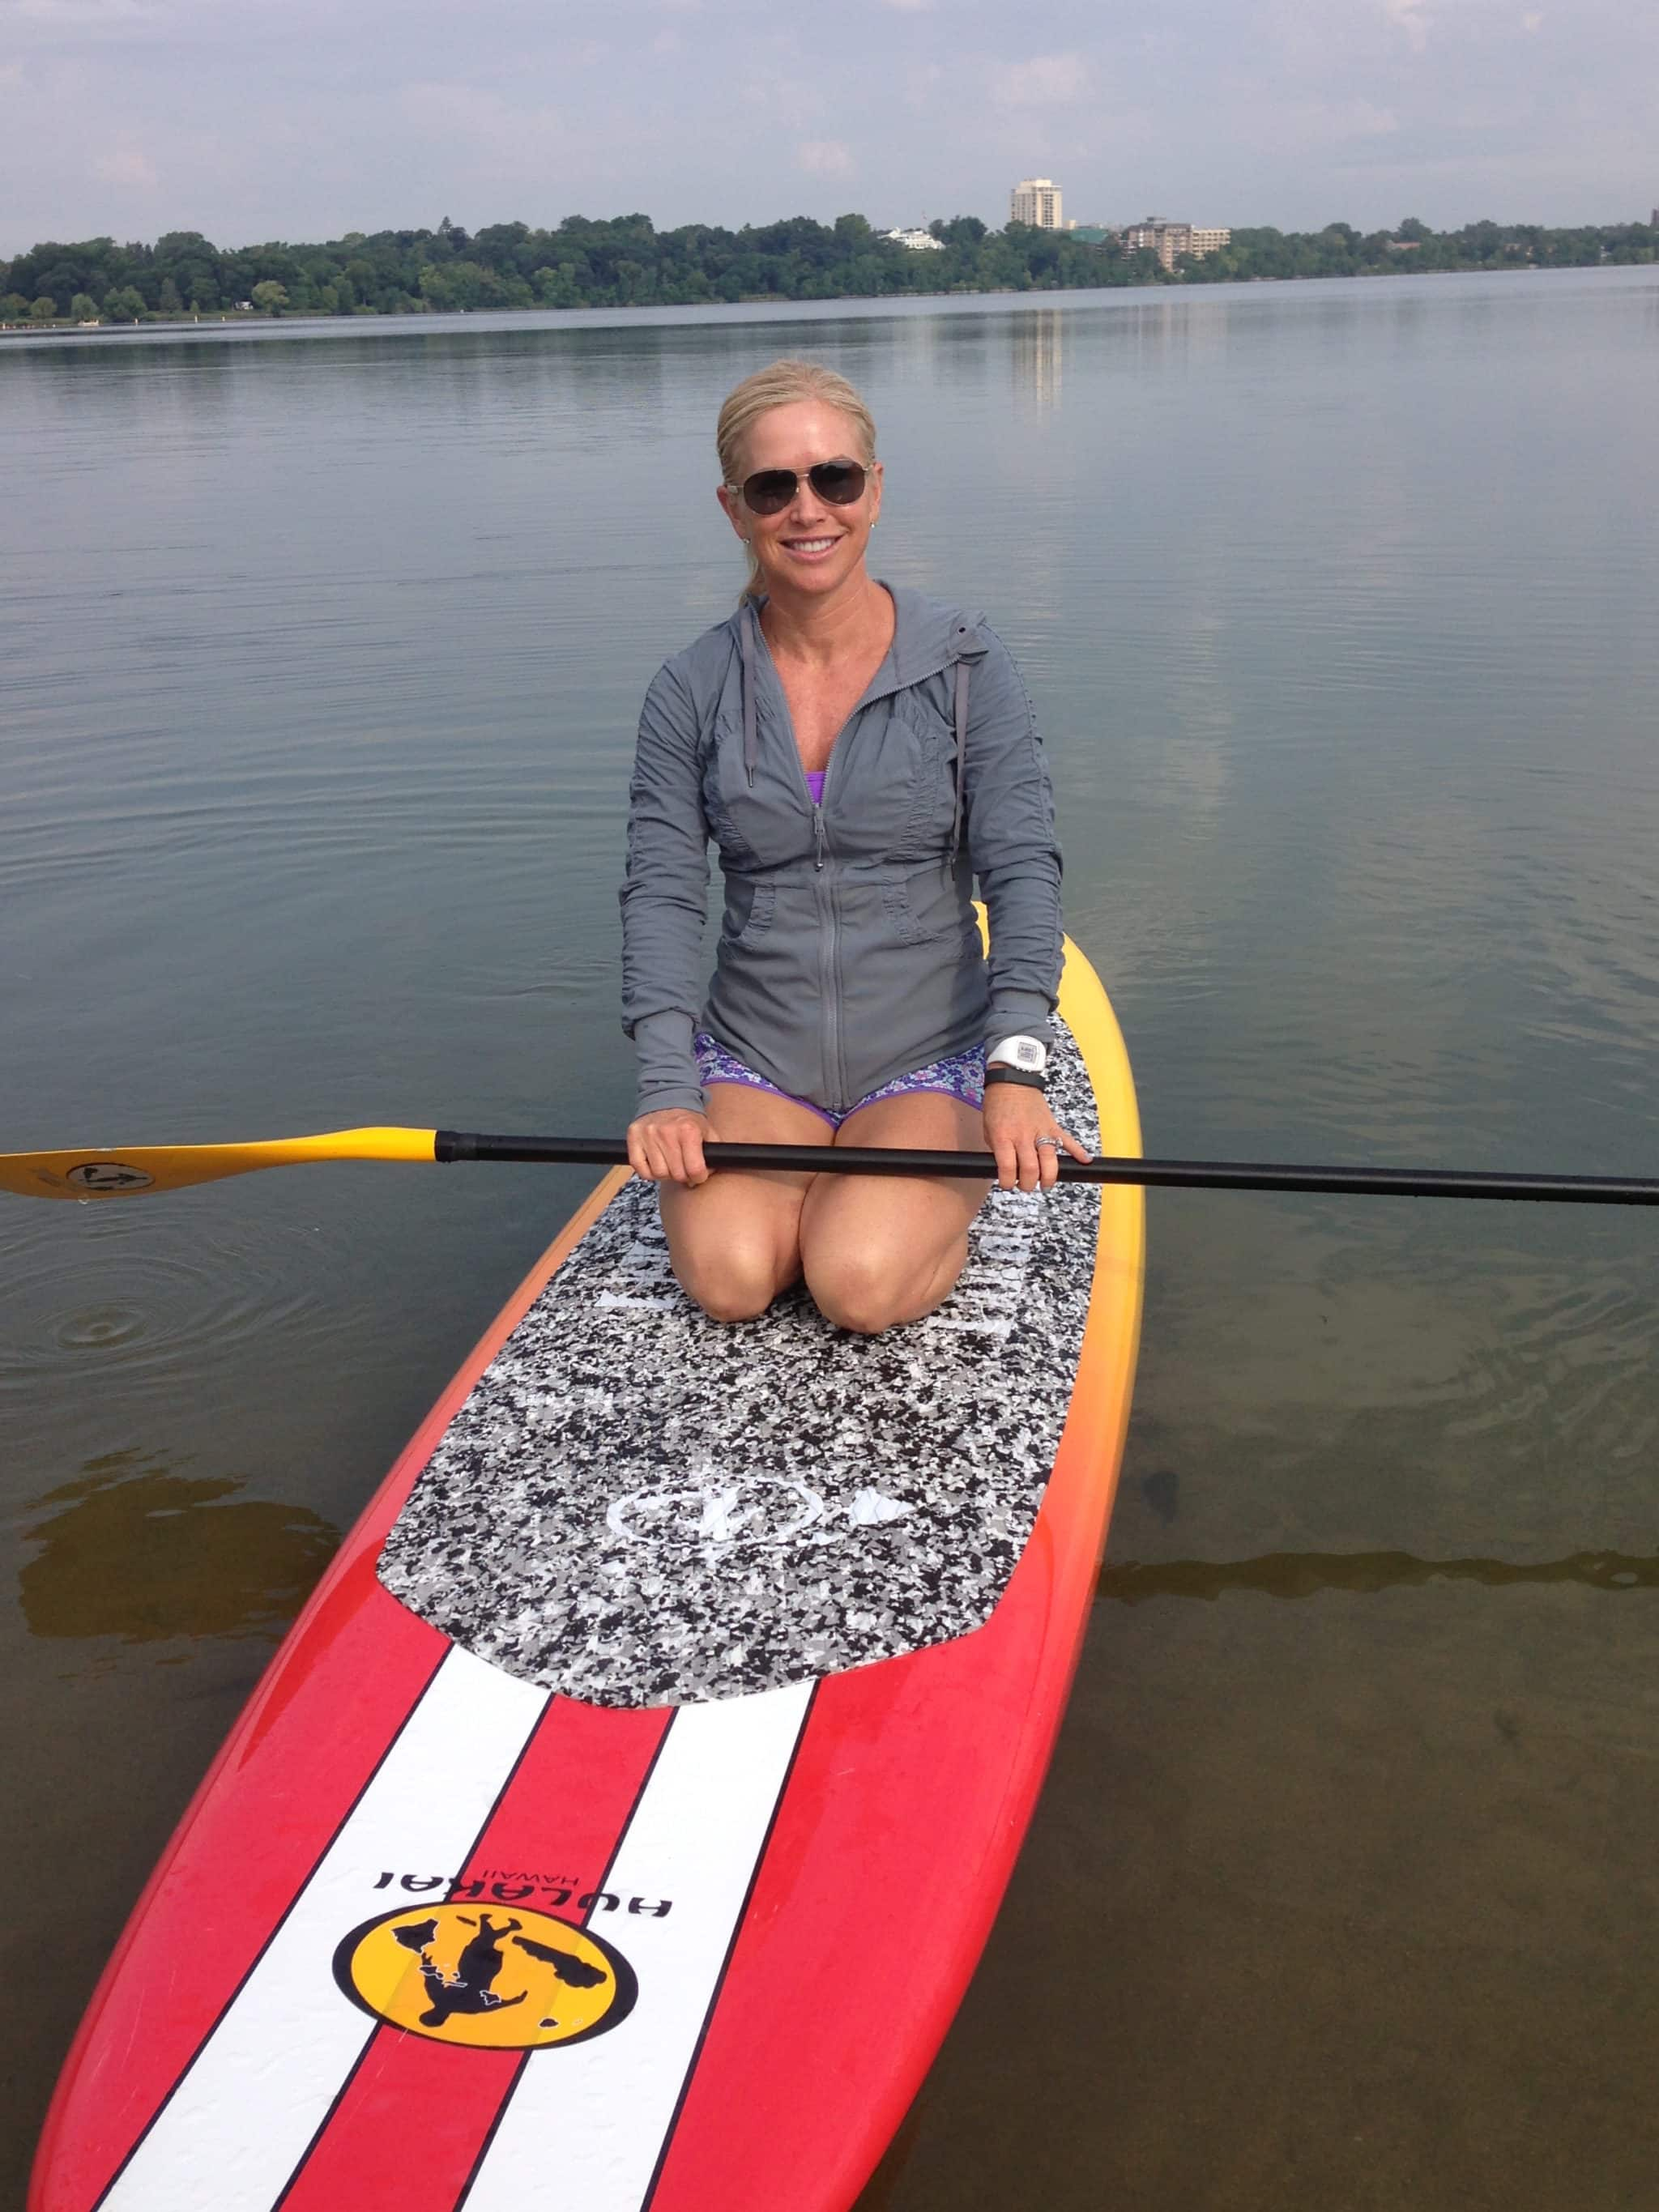 If you're a newbie to SUP (or don't even know what SUP is!), check out our Beginner's Guide To Stand-Up Paddleboarding!